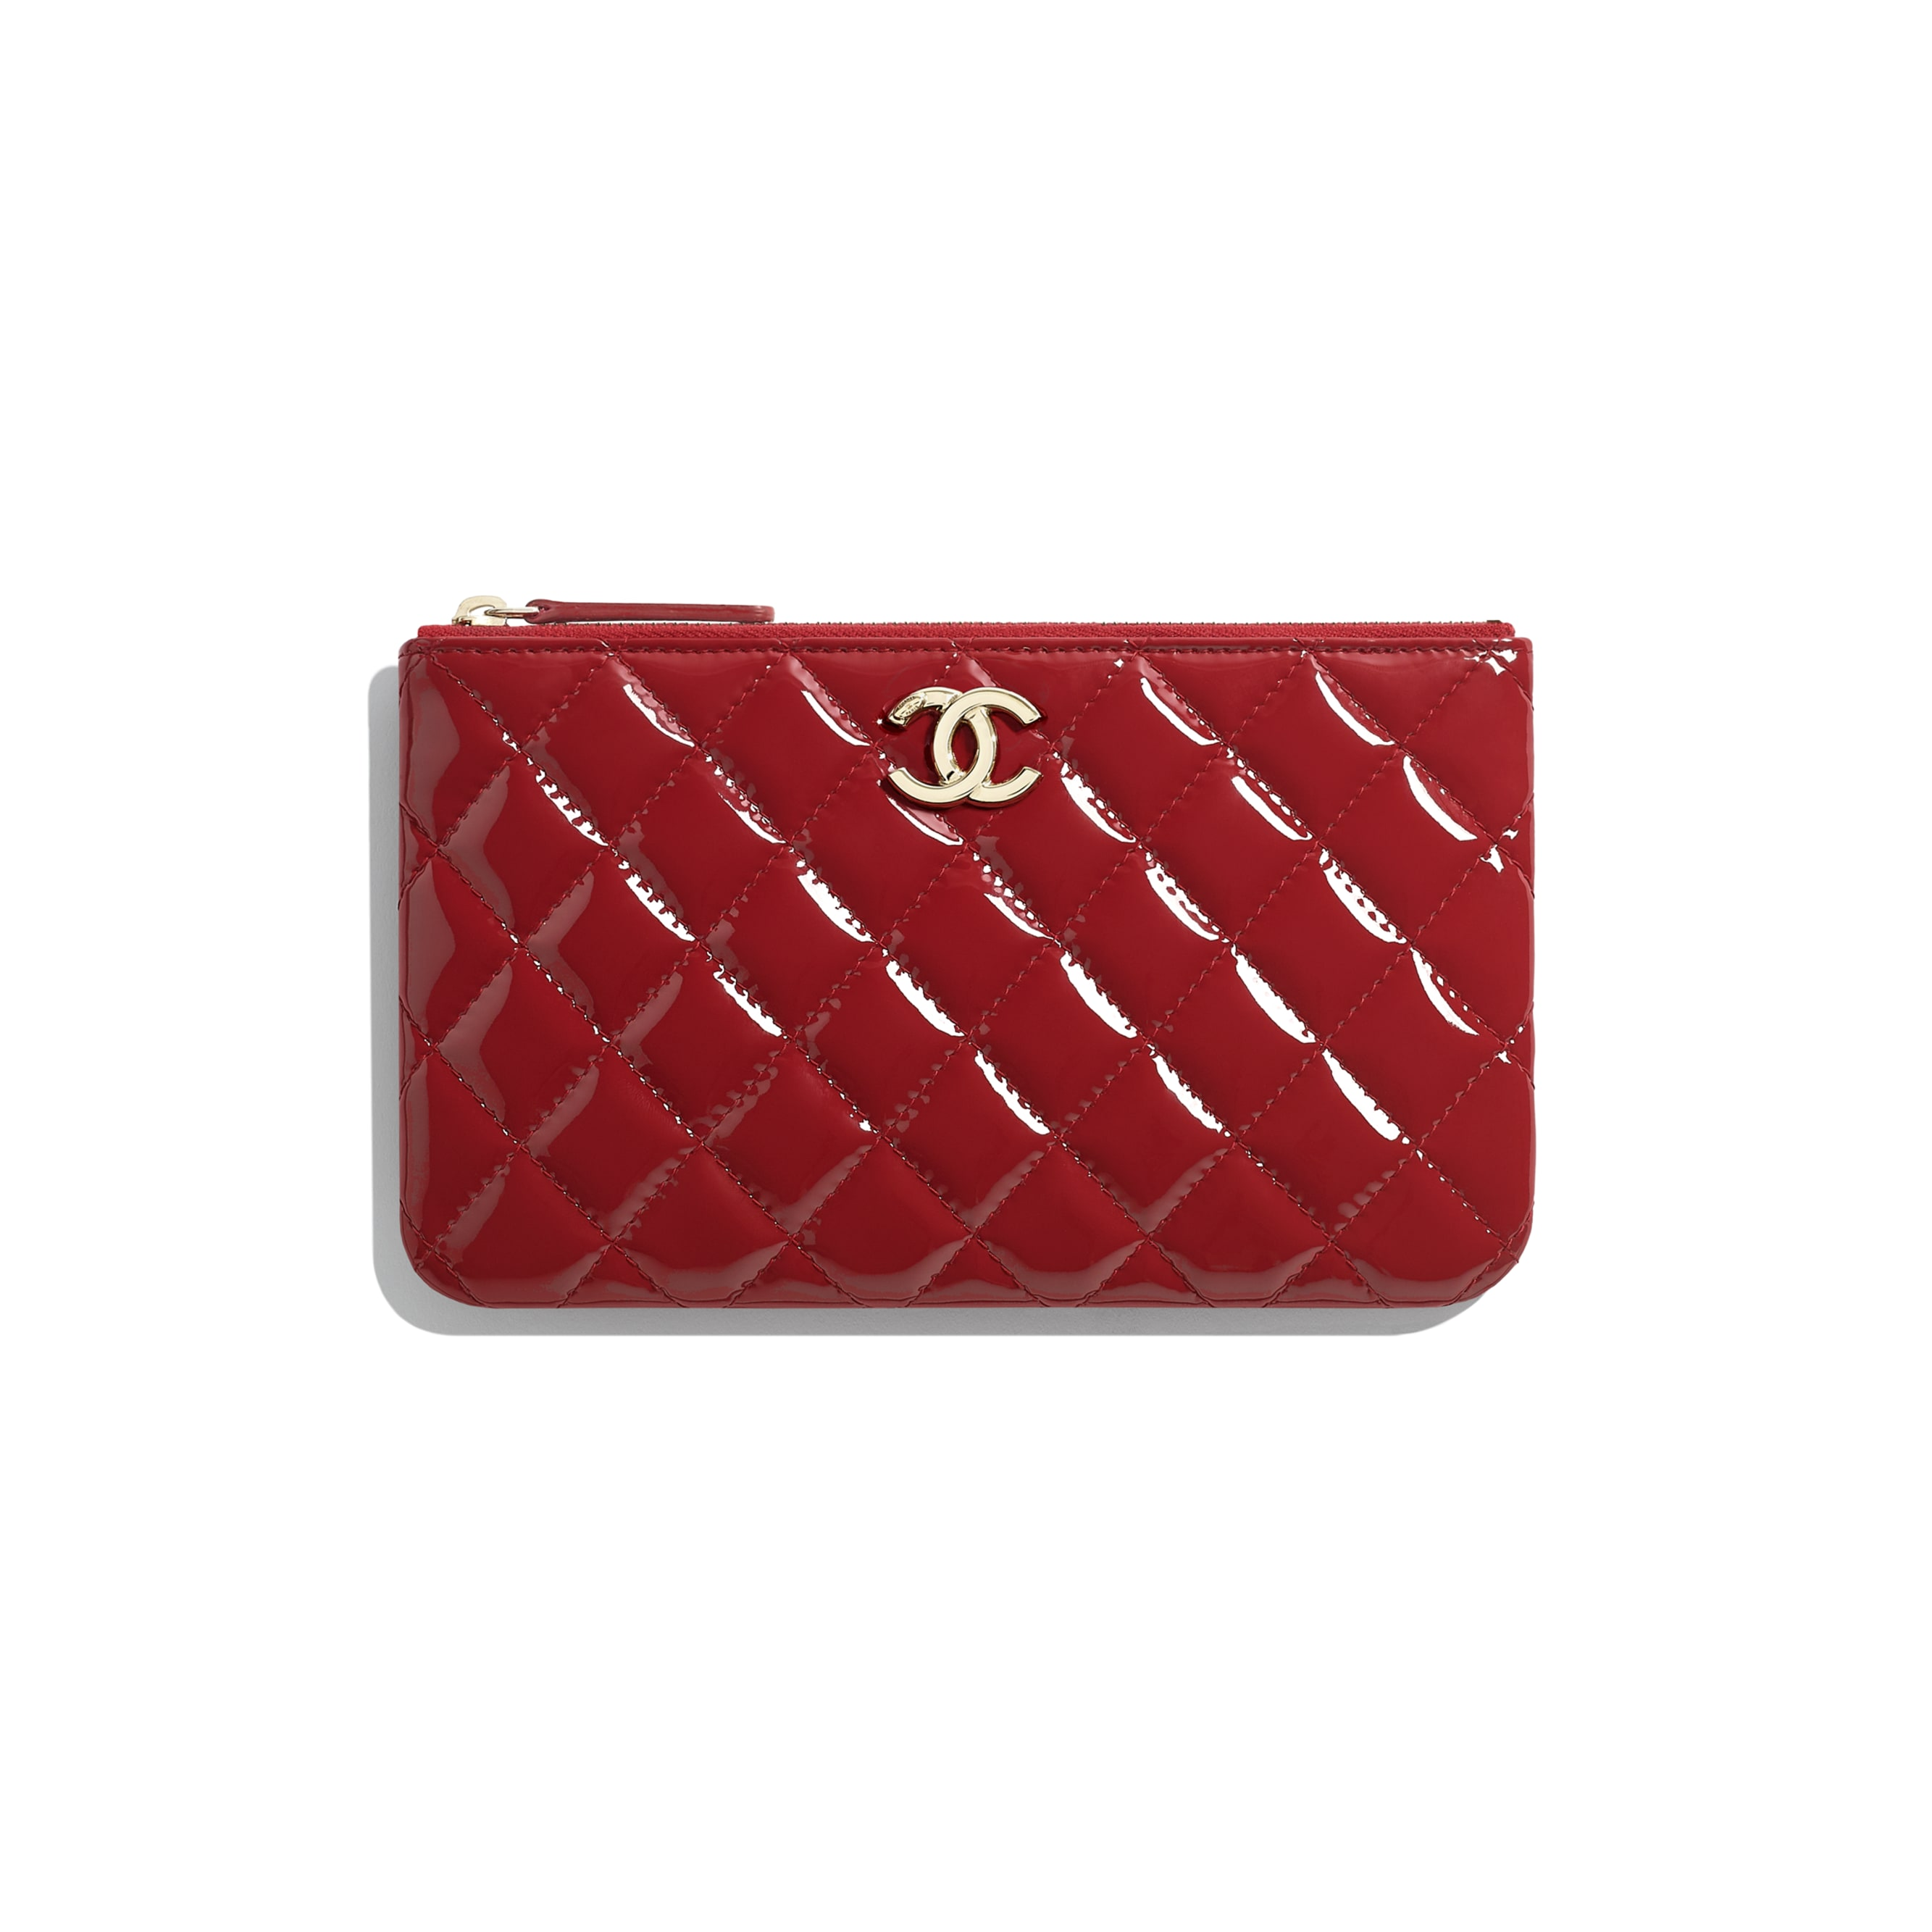 Small Pouch - Red - Patent Calfskin, Lambskin & Gold-Tone Metal - CHANEL - Default view - see standard sized version